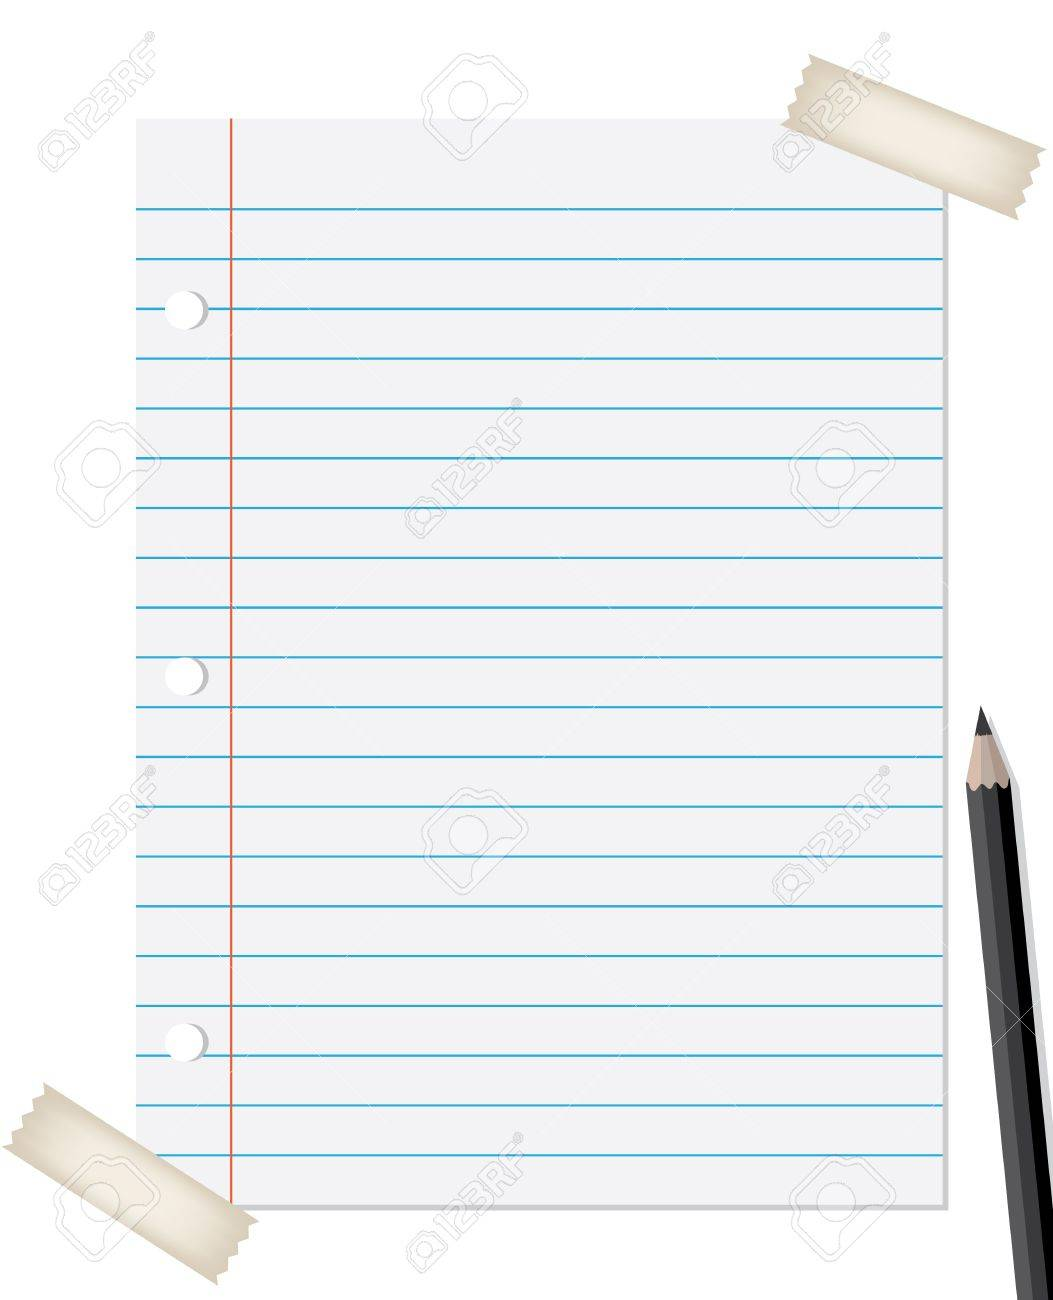 Doc24803508 Lined Paper Printables Printable Lined Paper JPG – Lined Paper Printables